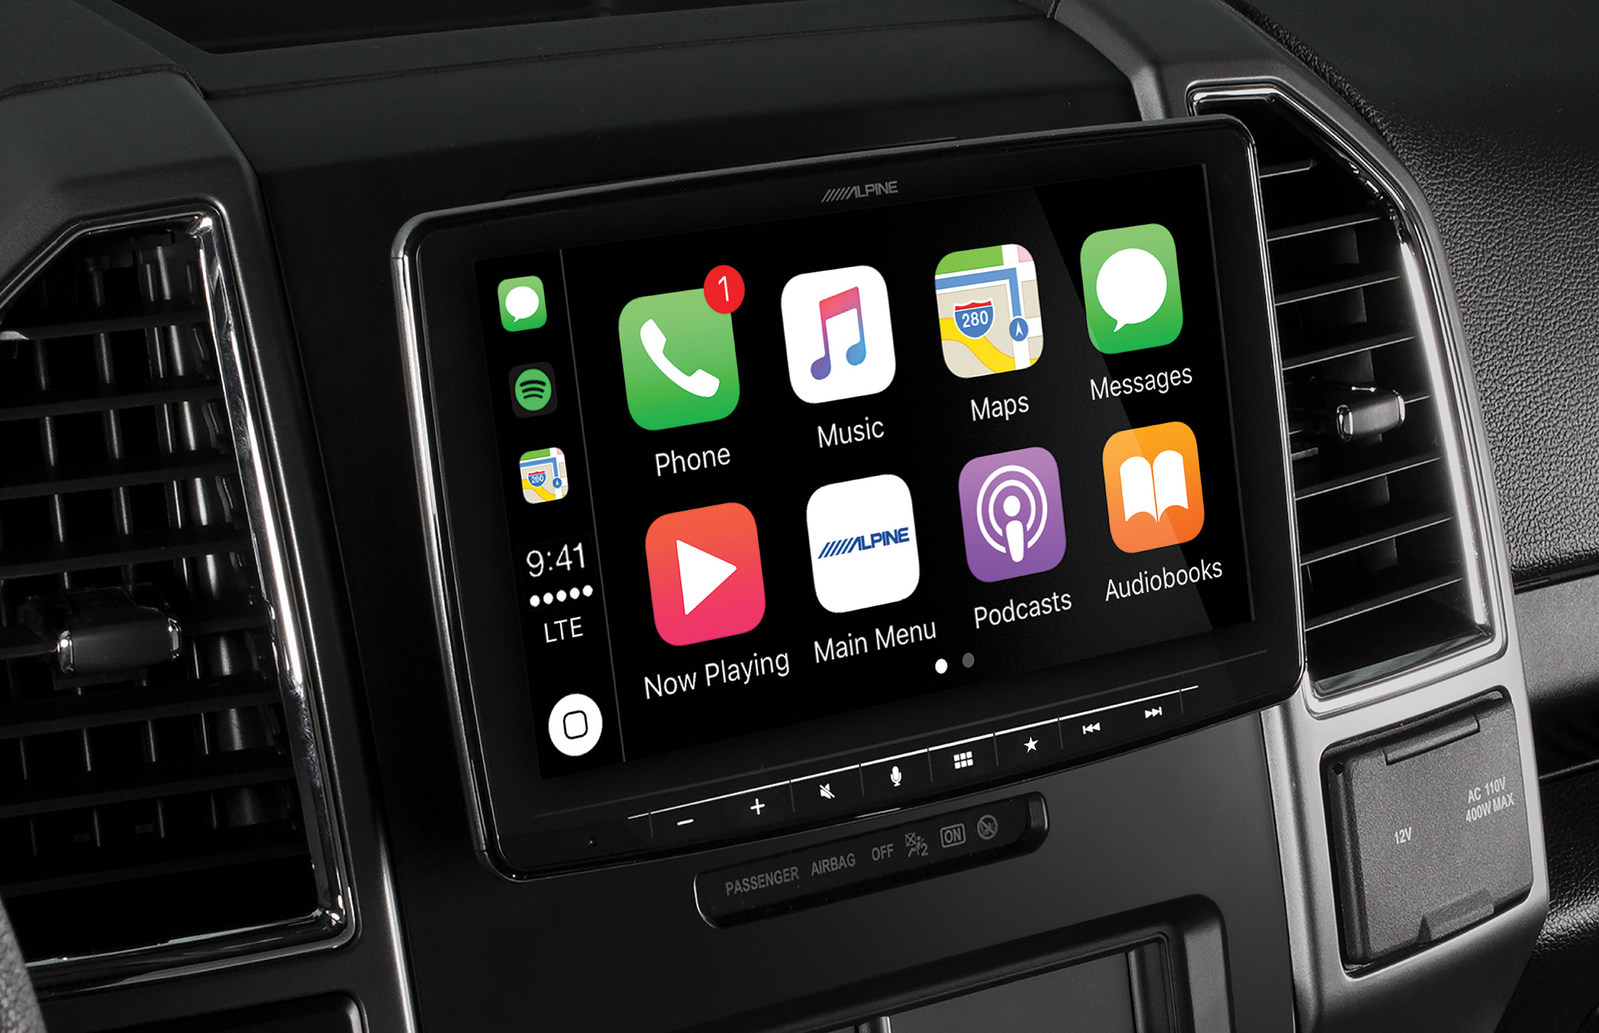 update: now available for $900] alpine announces android auto head